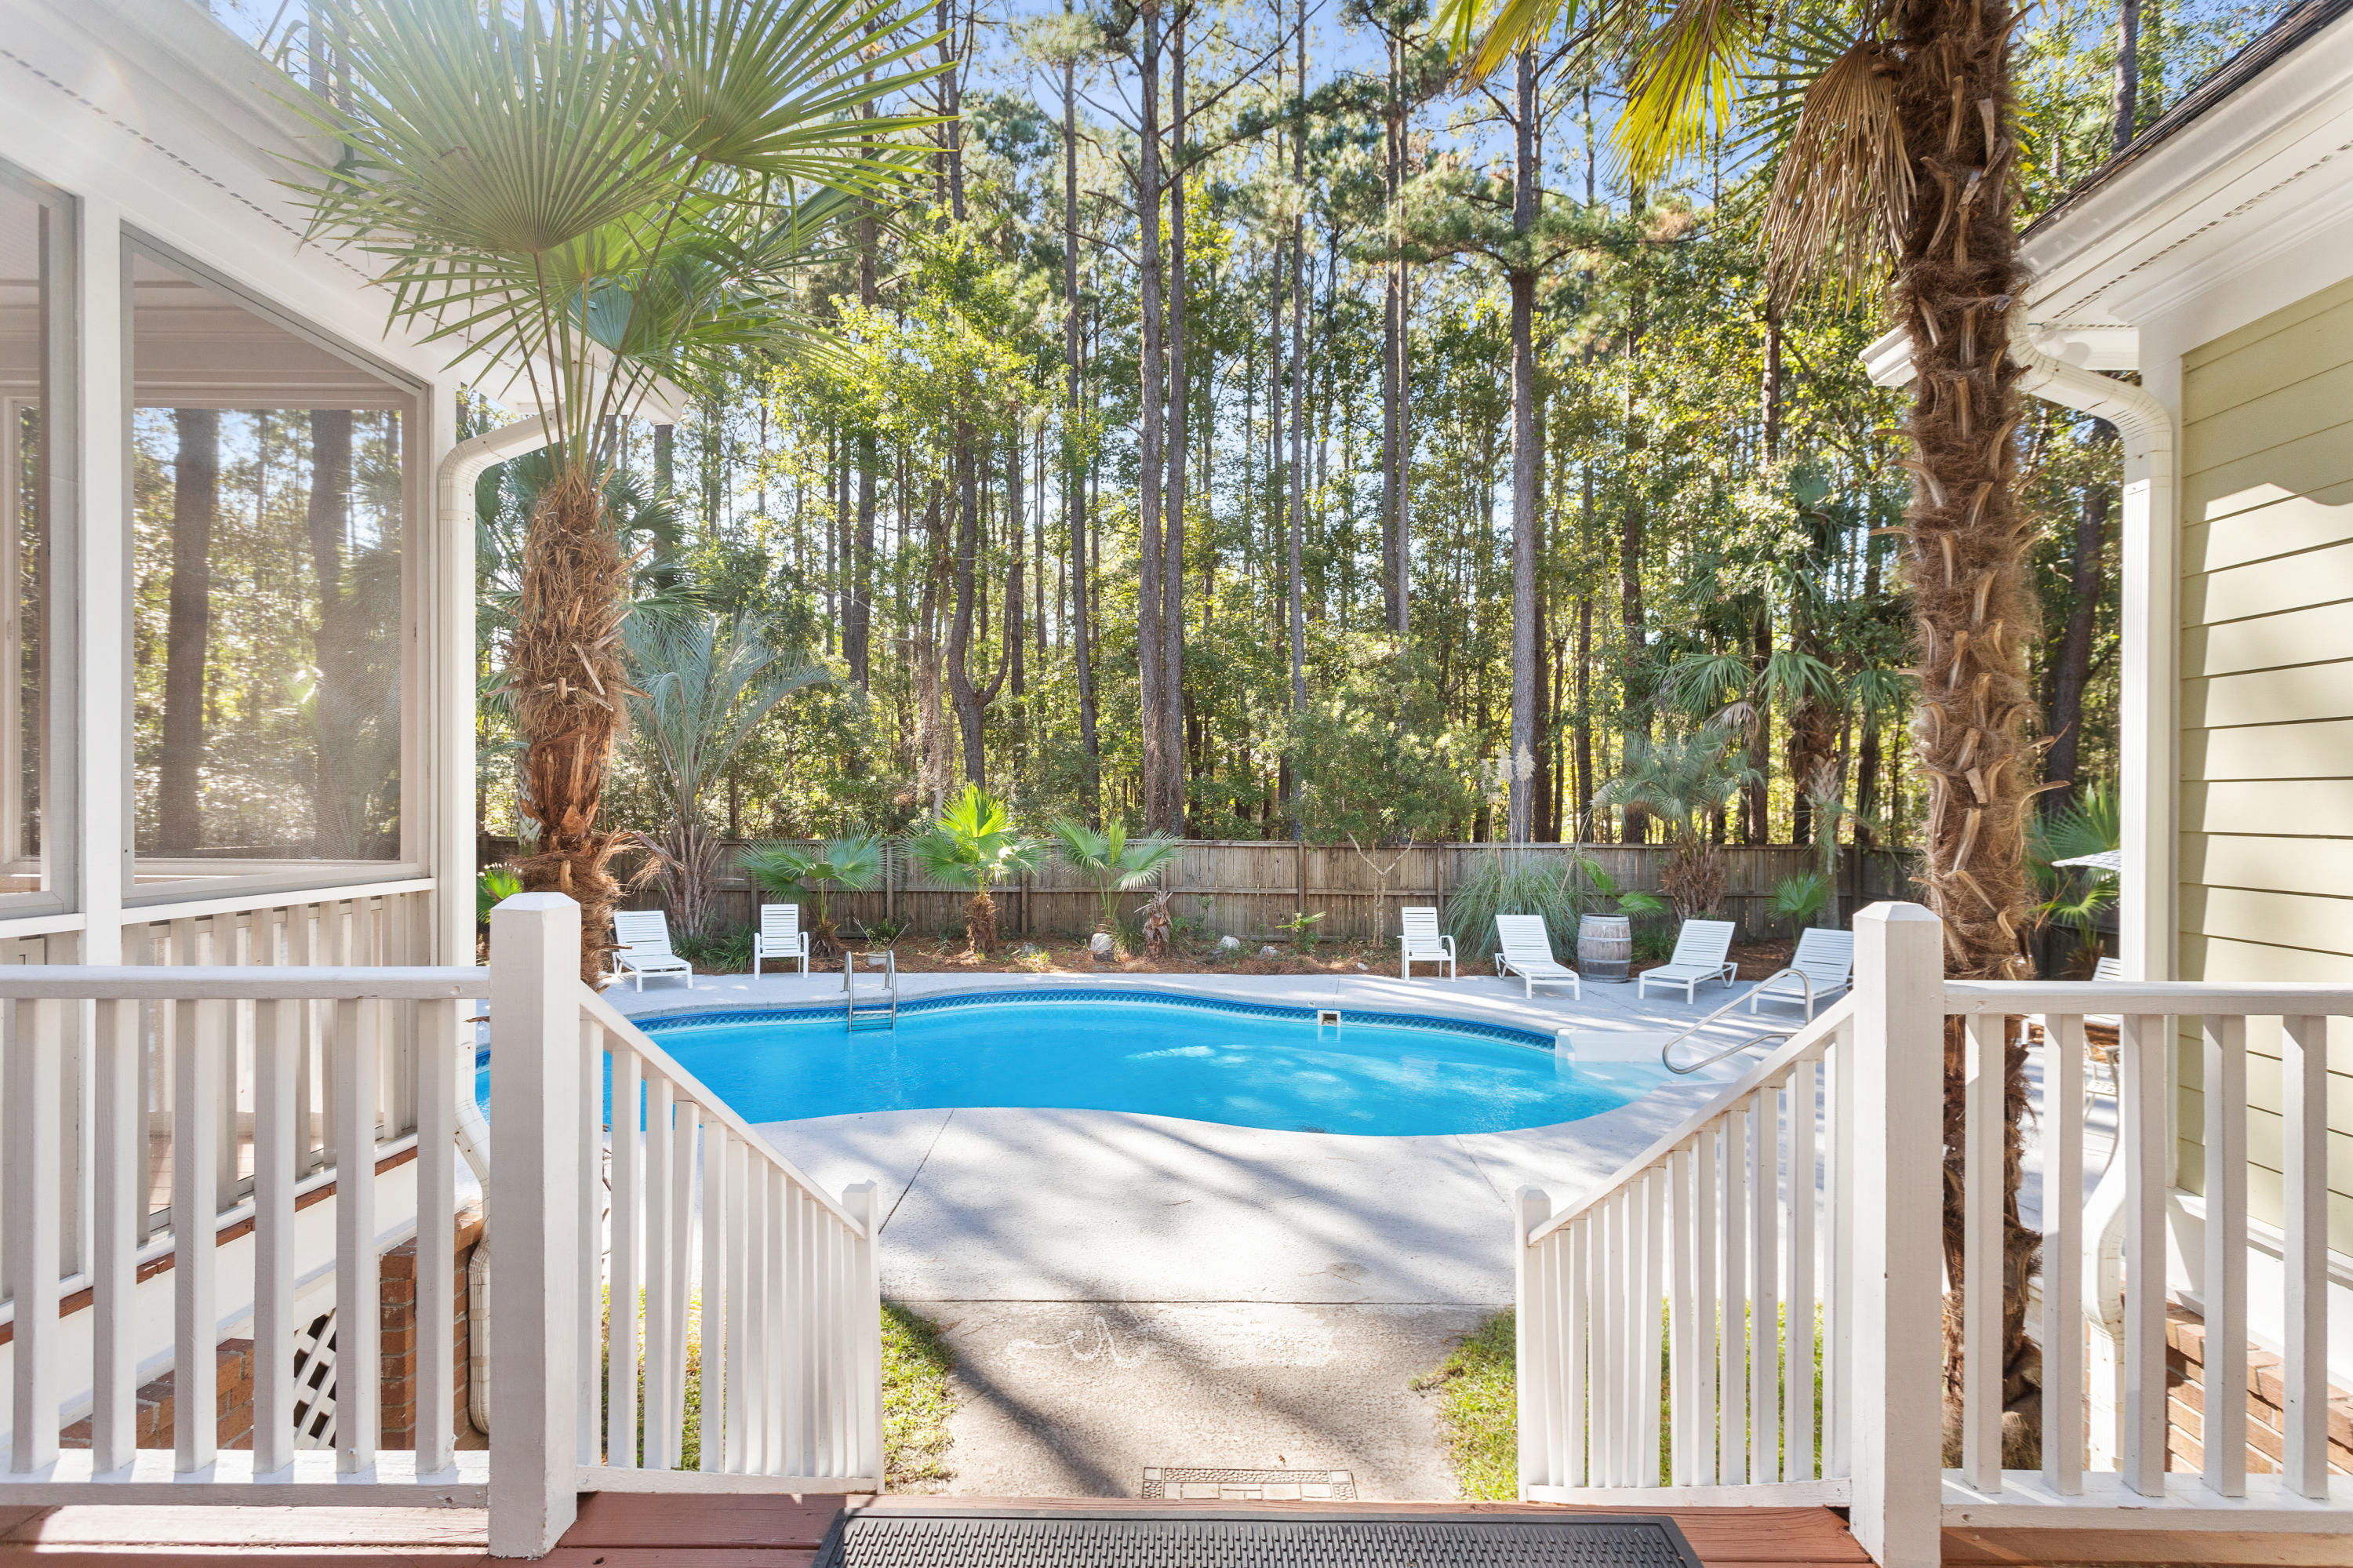 Dunes West Homes For Sale - 1842 Shell Ring, Mount Pleasant, SC - 3